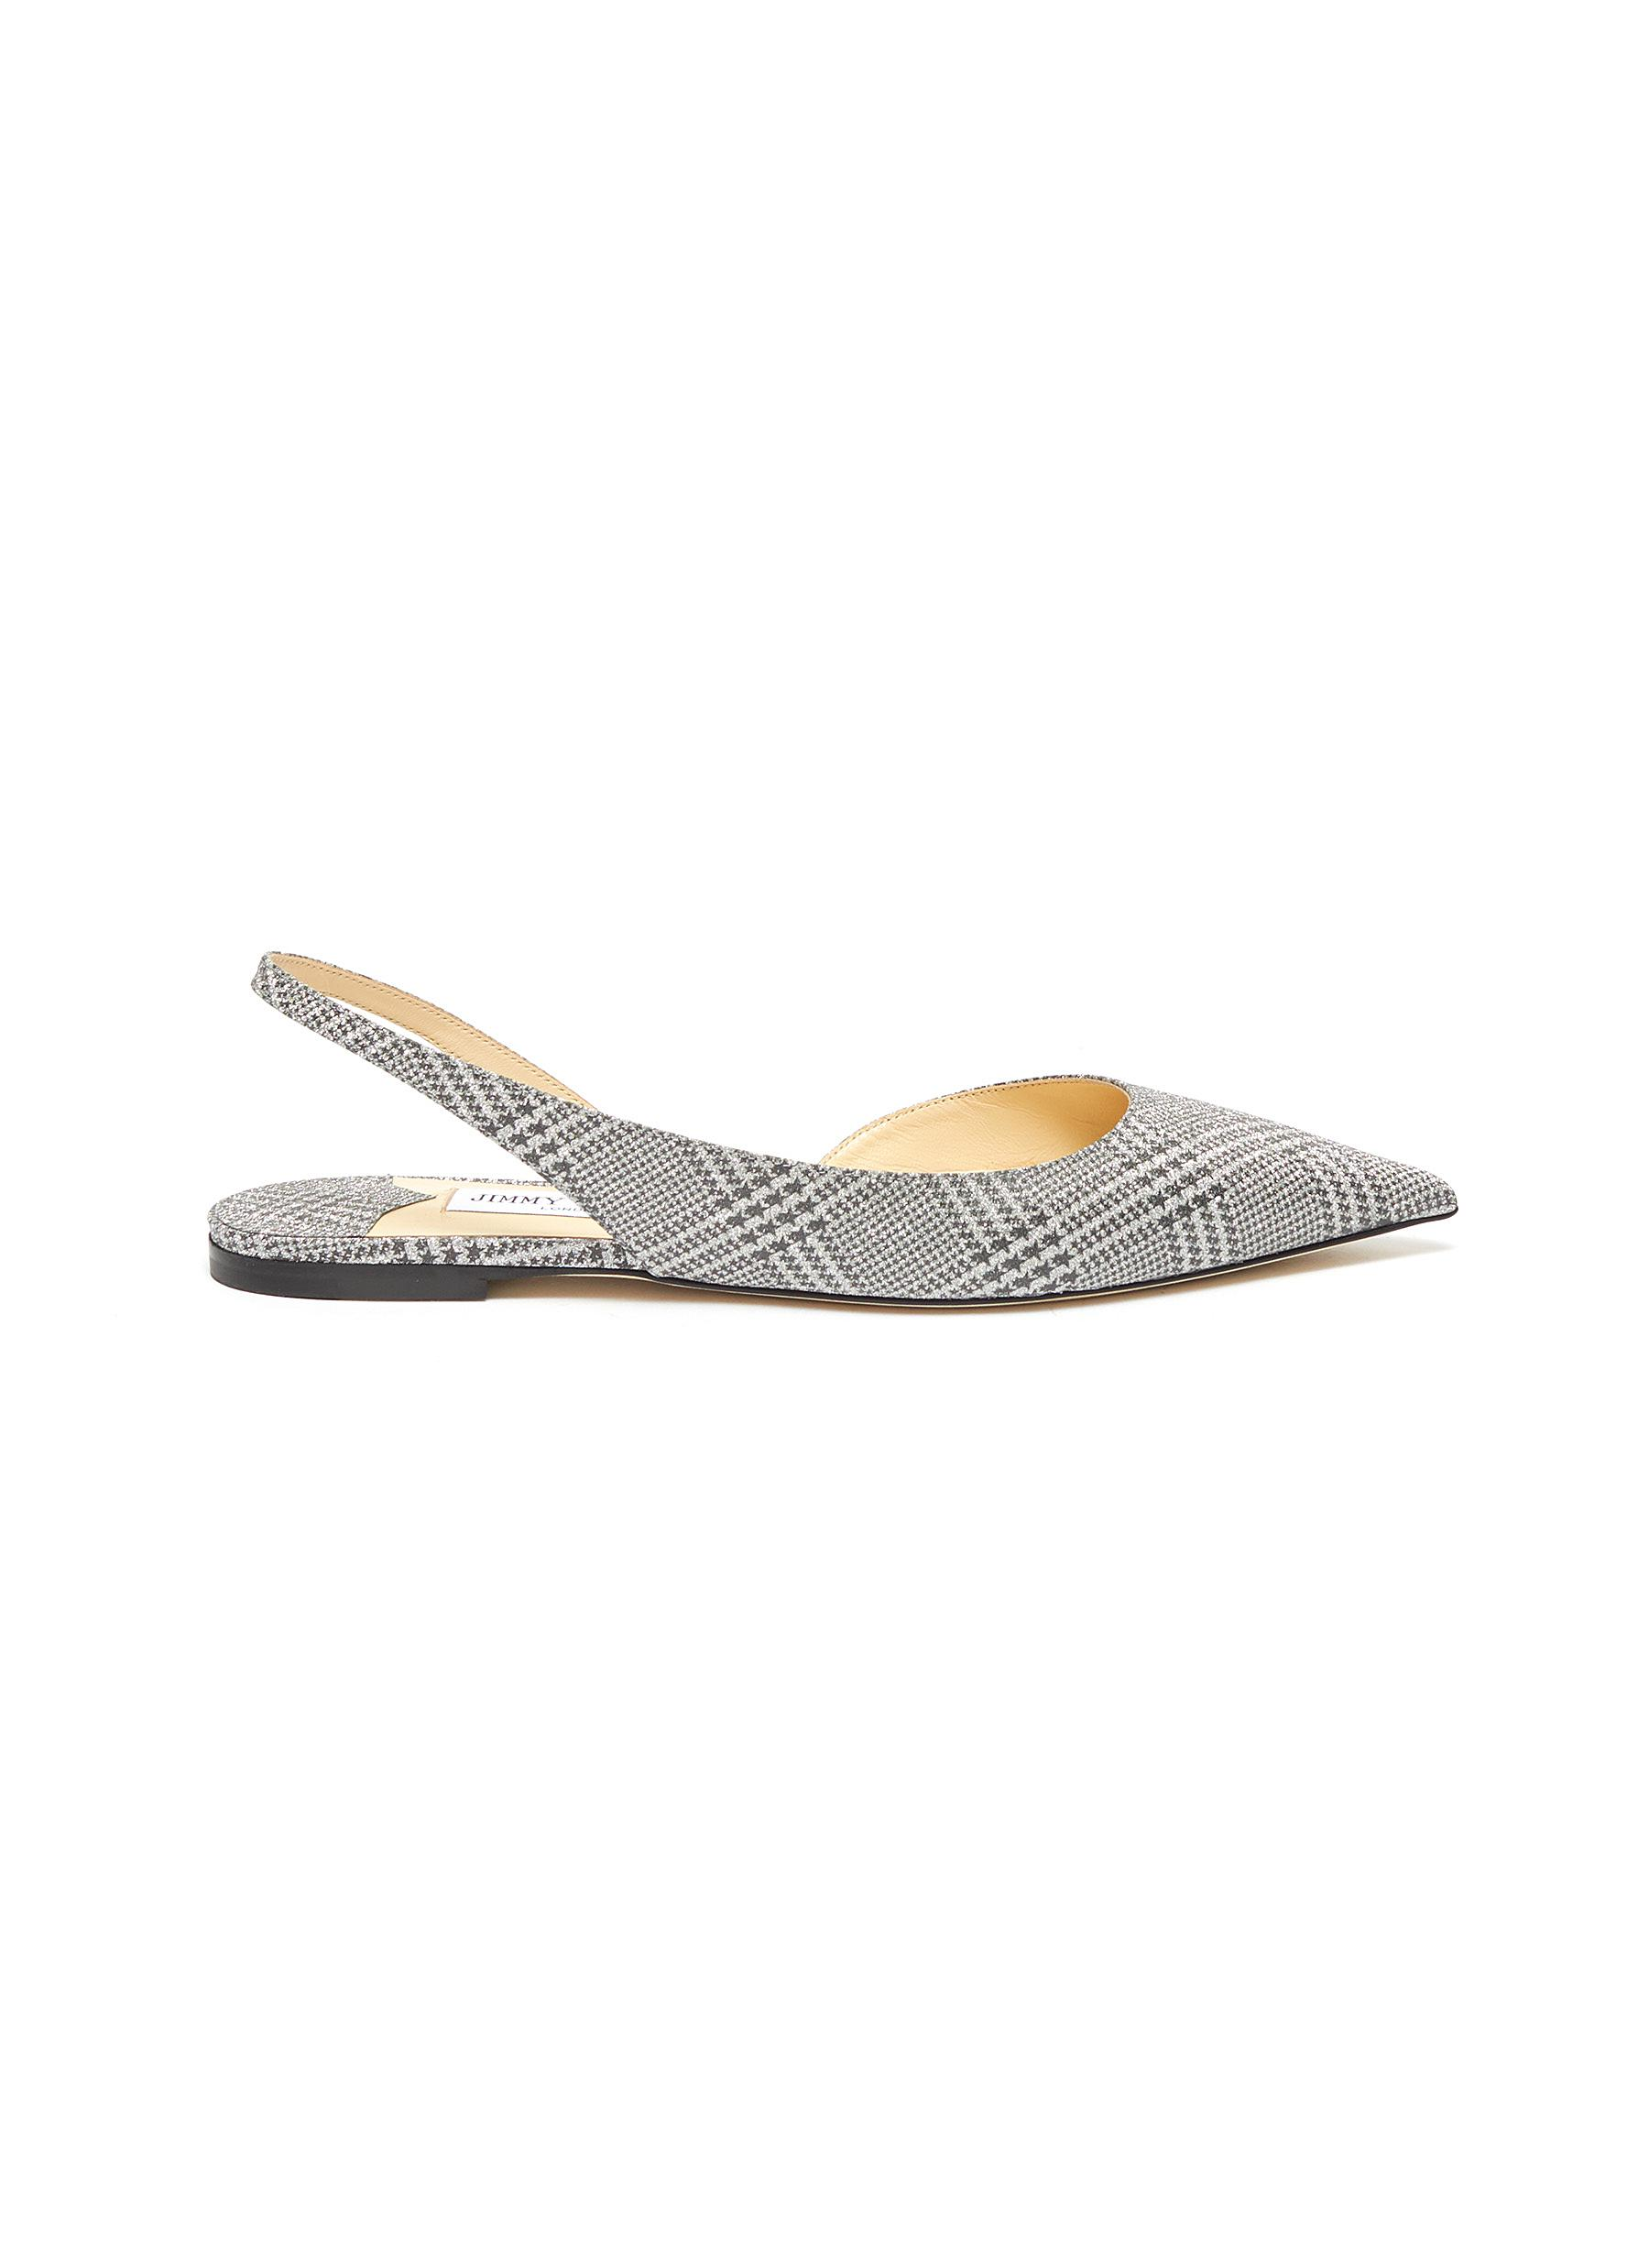 Fetto Prince Of Stars print houndstooth slingback flats by Jimmy Choo